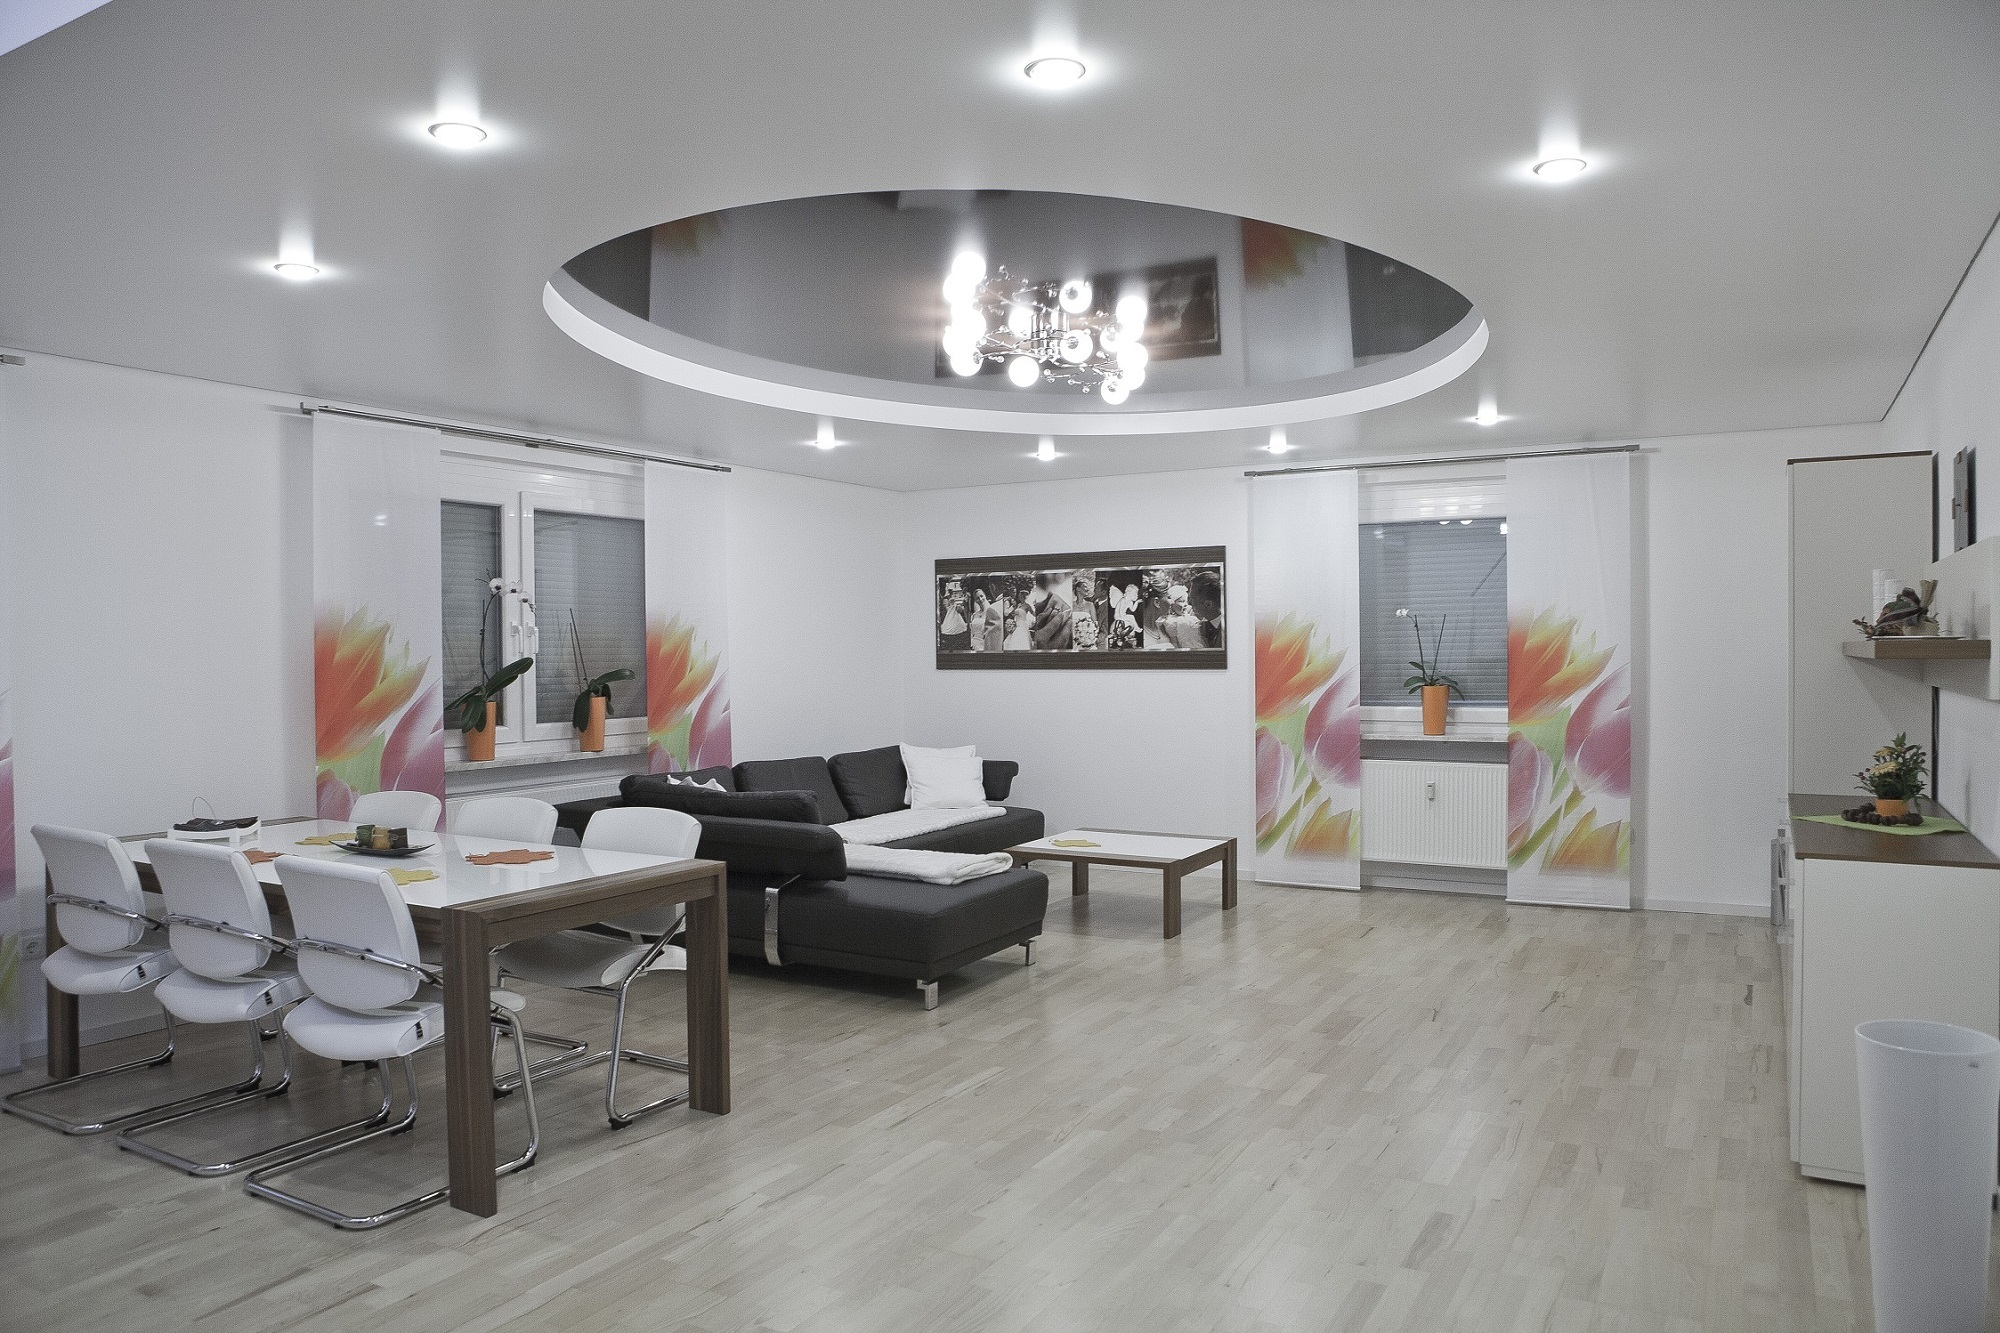 suspended-ceiling-784421